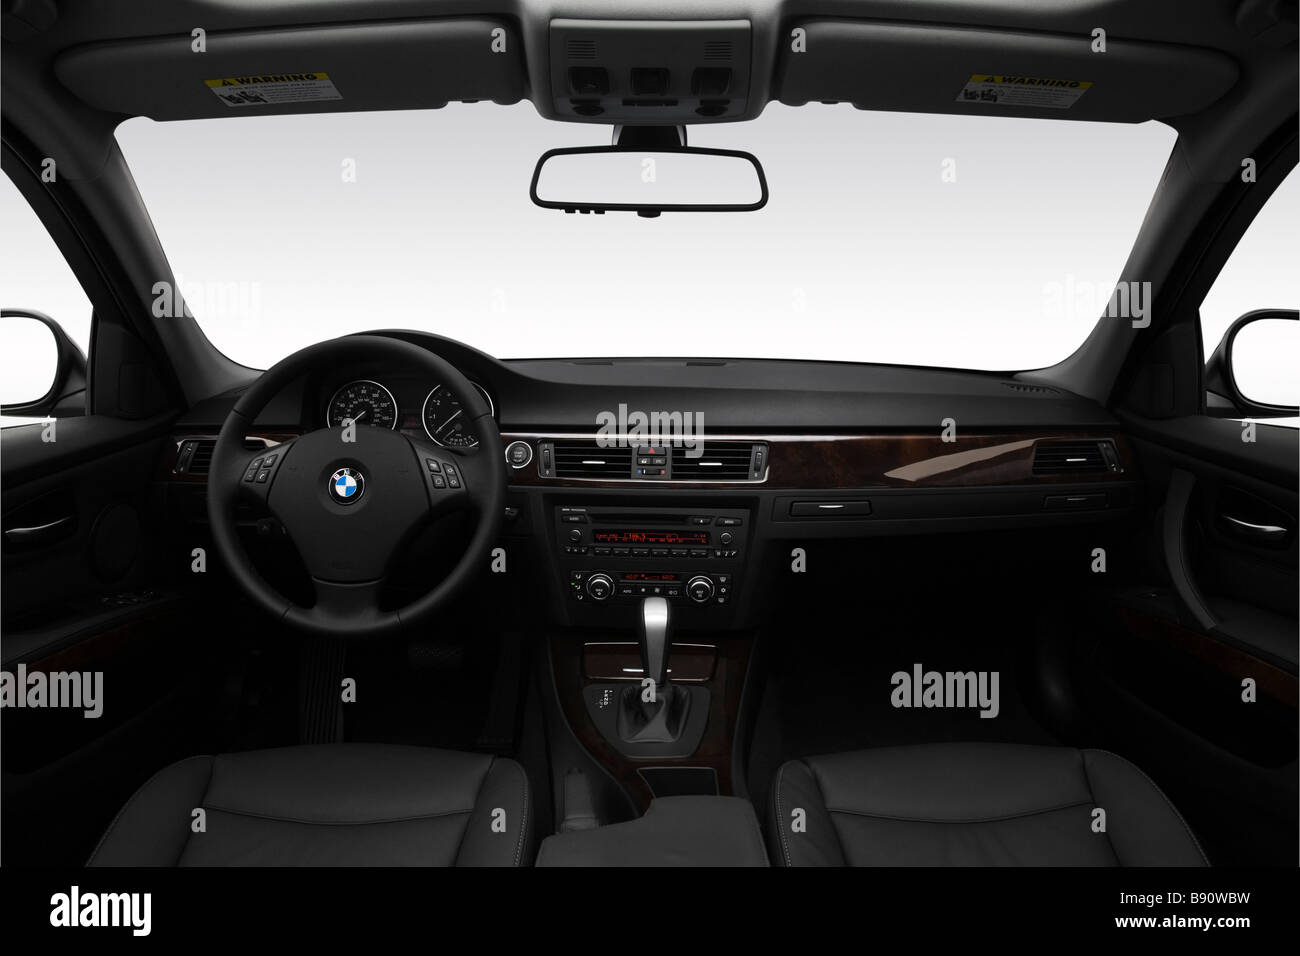 2009 Bmw 3 Series 328i In Gray Dashboard Center Console Gear Stock Photo Alamy